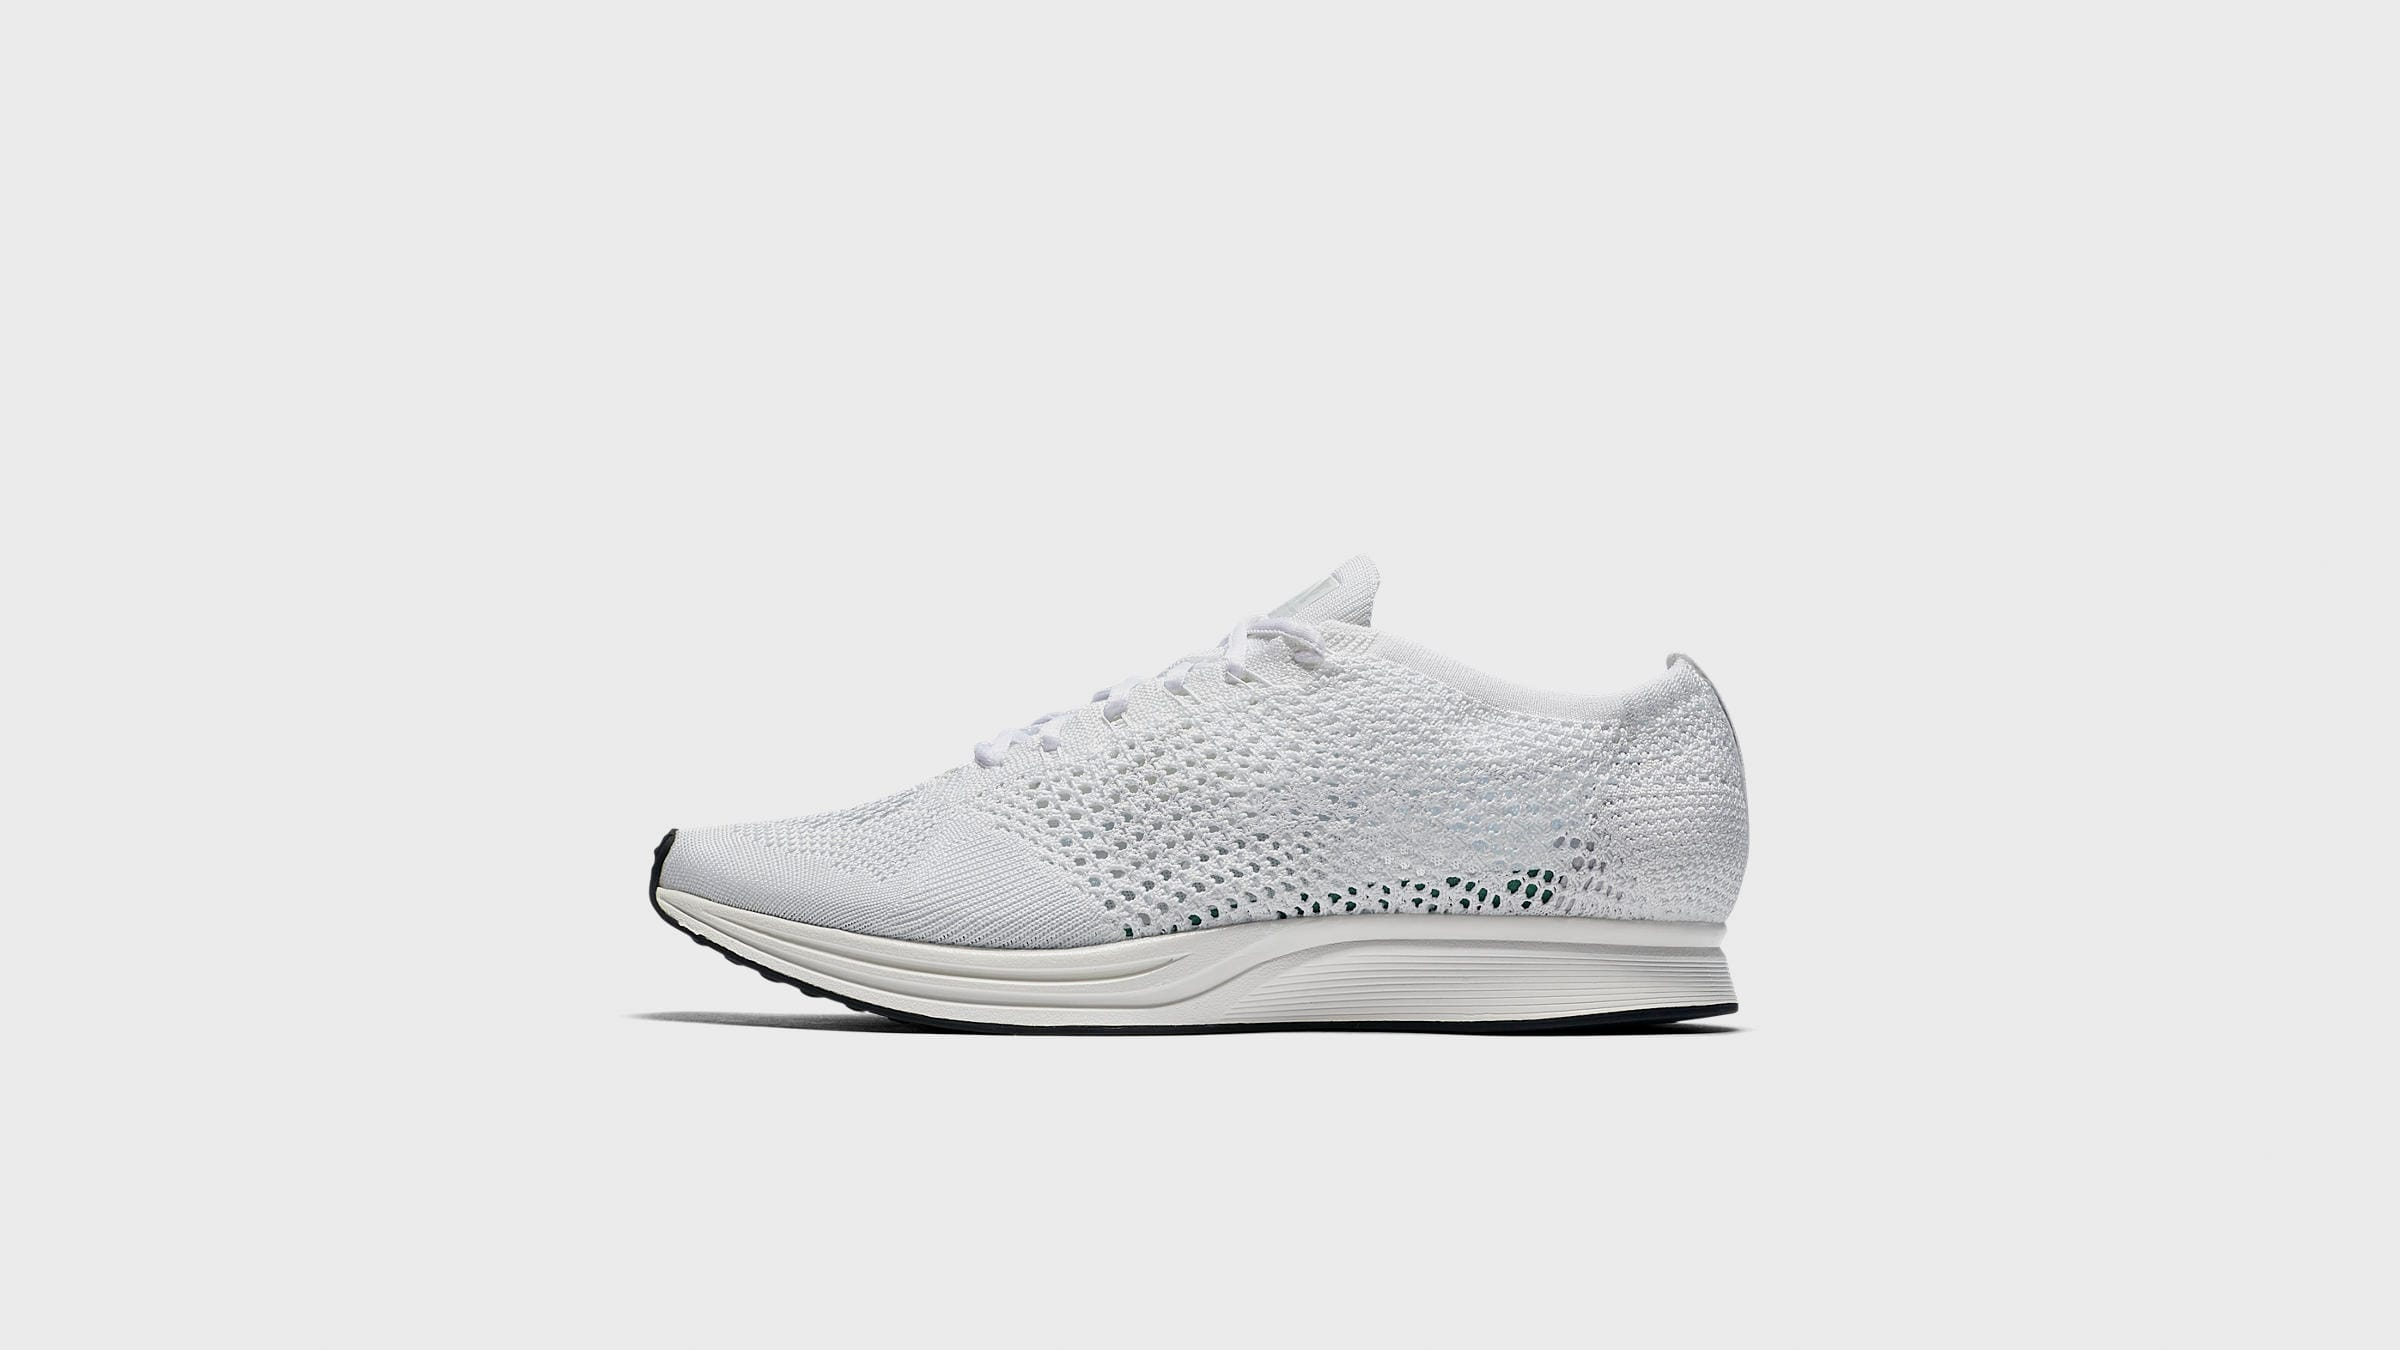 1cee31df3613 Nike Flyknit Racer White   Pure Platinum